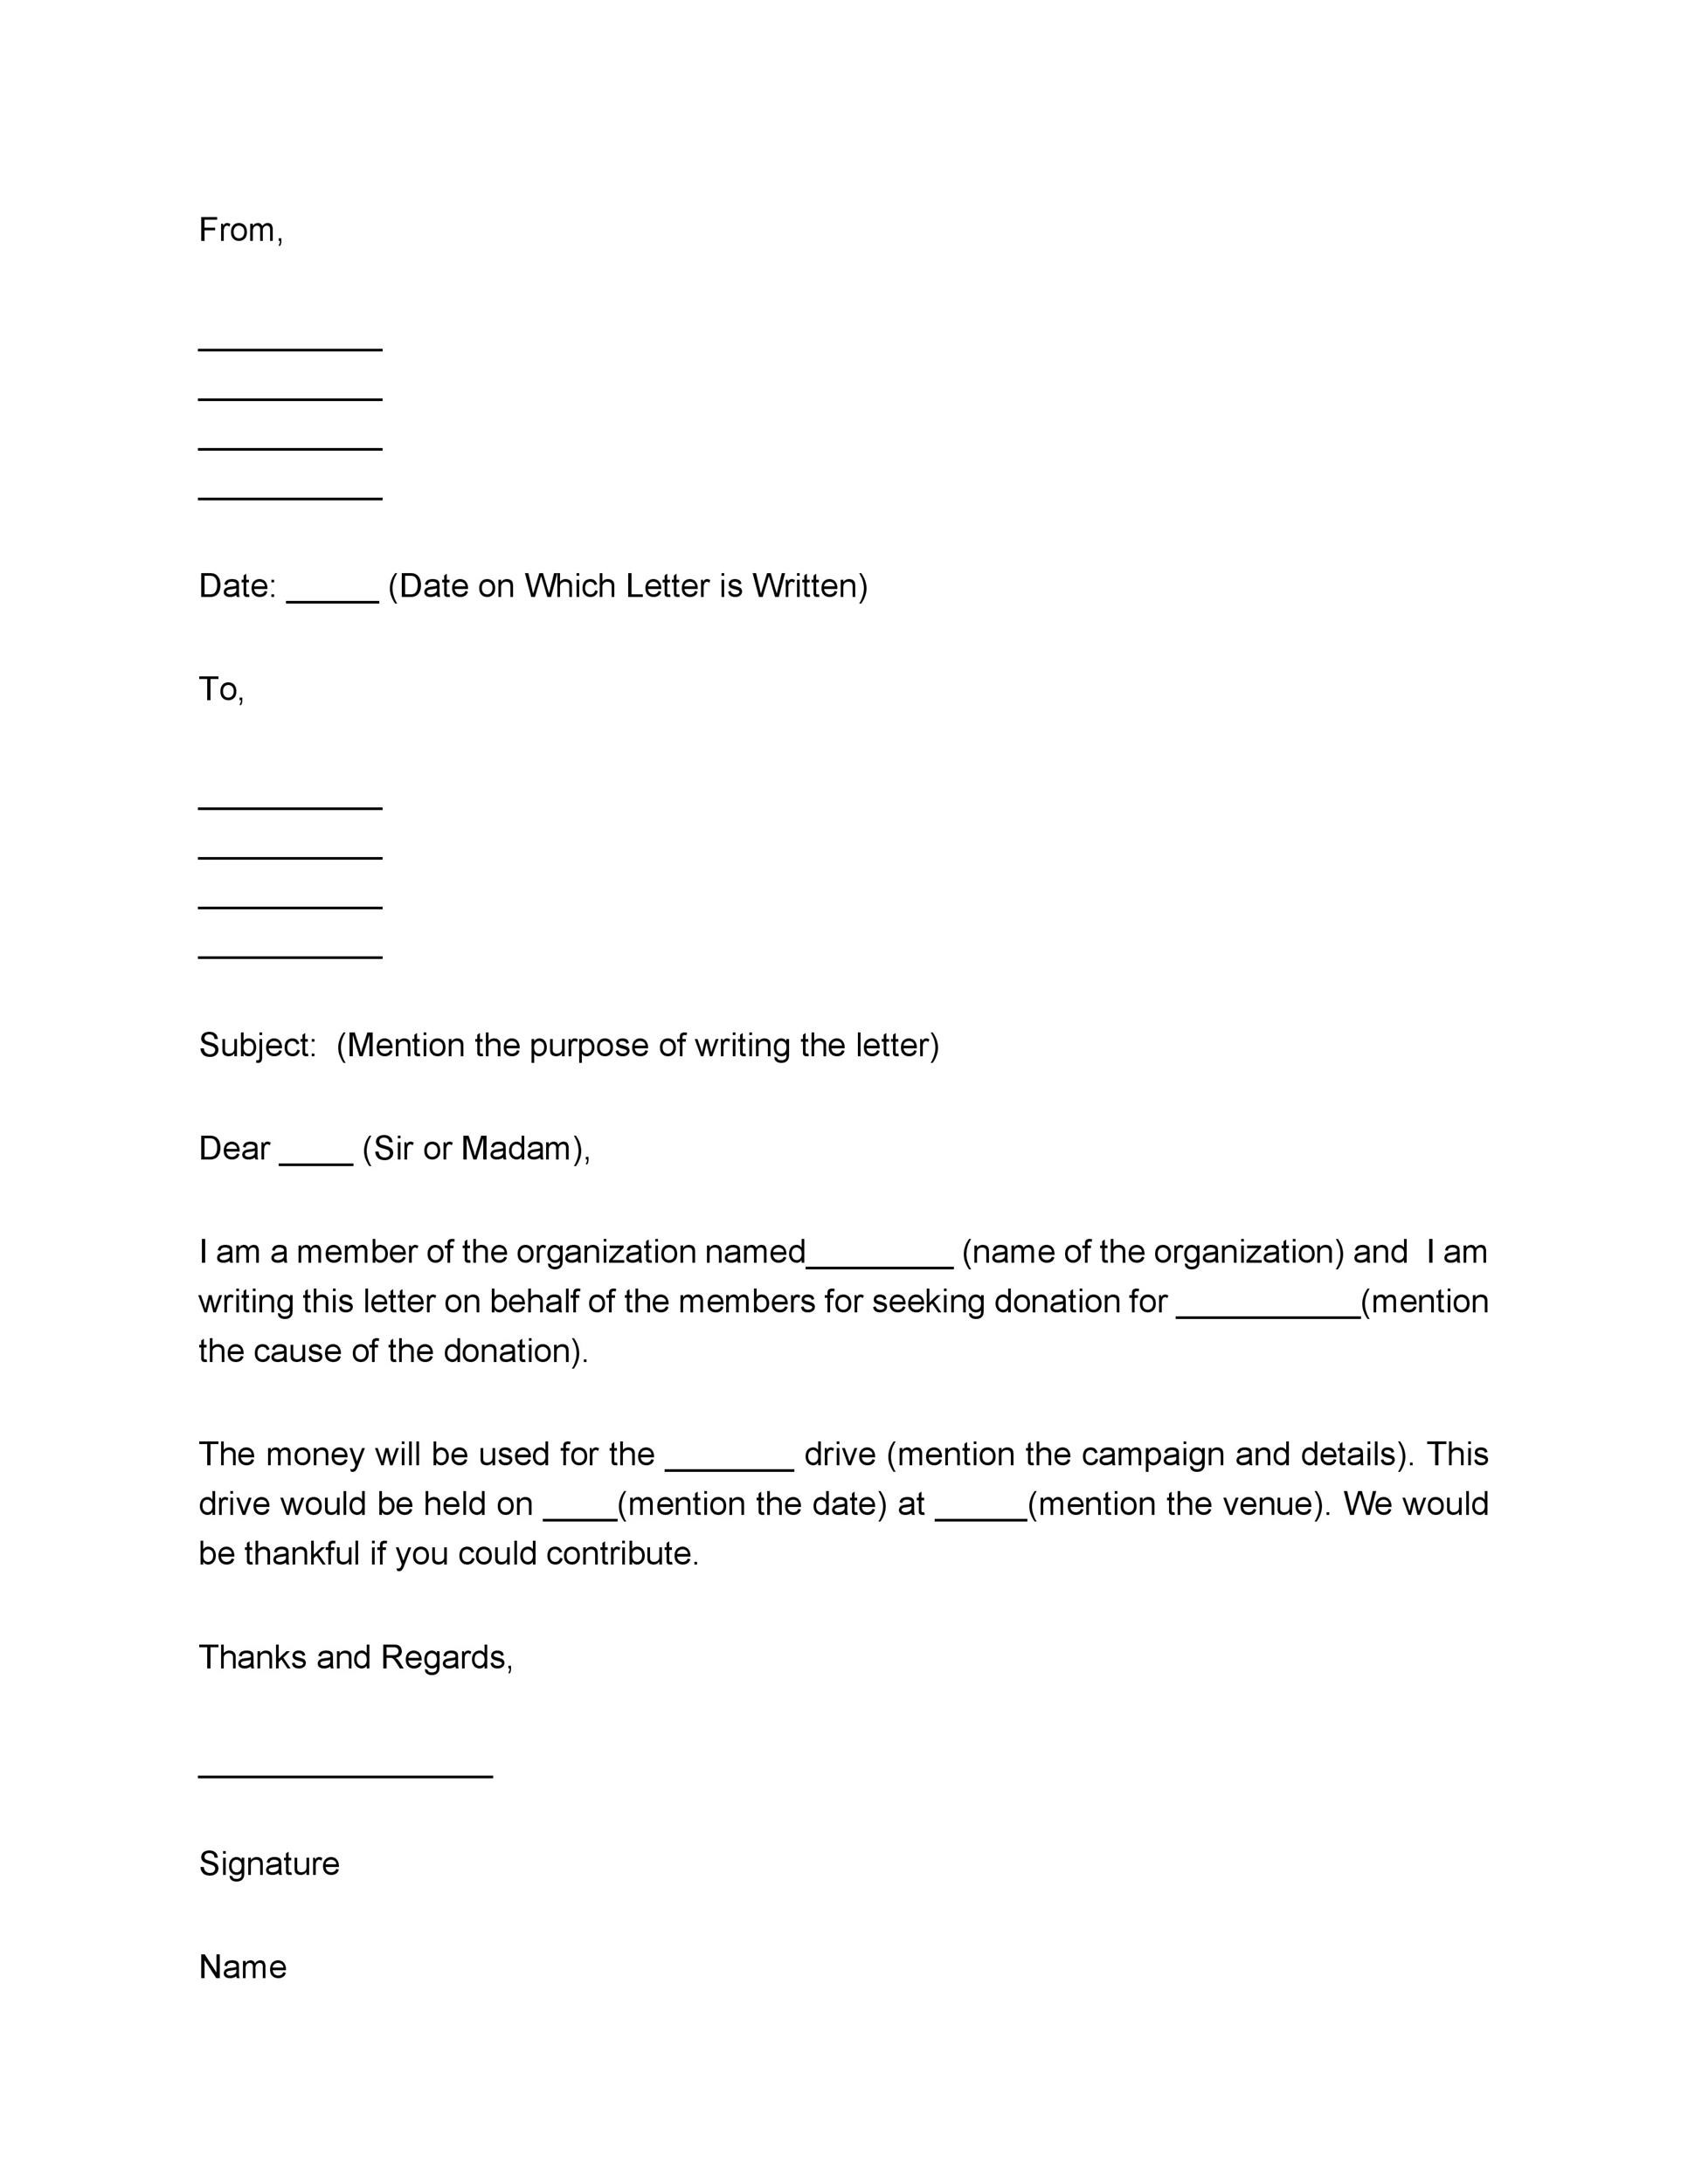 43 FREE Donation Request Letters Amp Forms